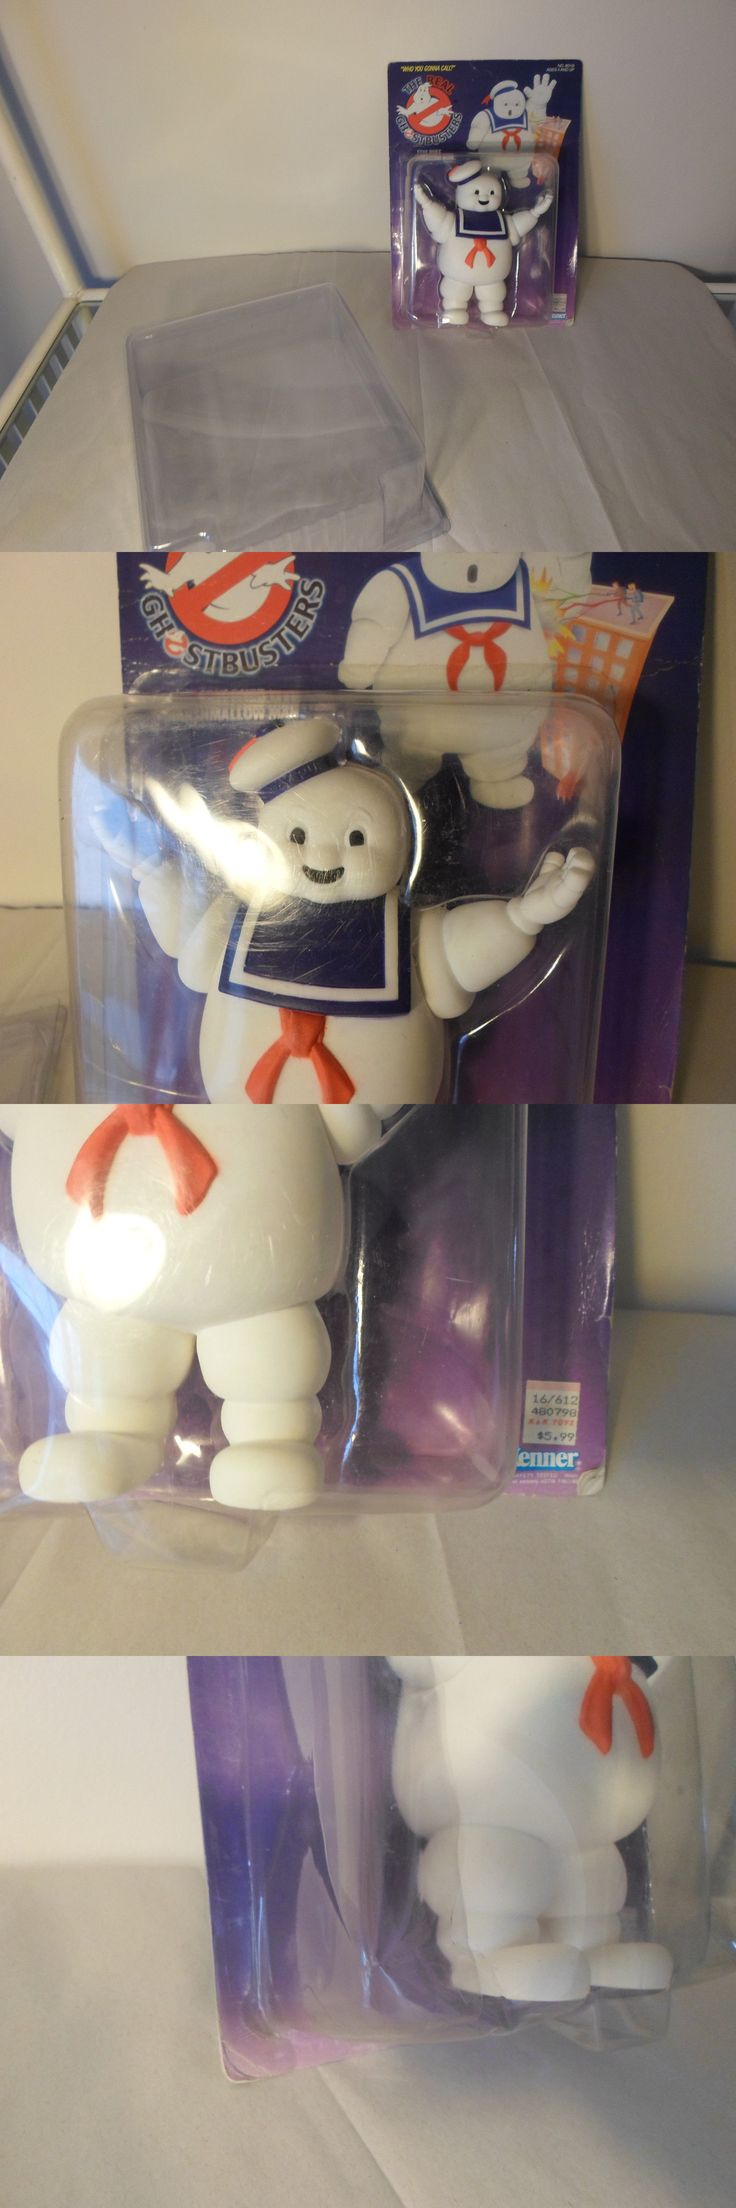 Action Figures 7114: Marshmallow Man Ghostbusters Action Figure New Unopened Kenner Moc Stay Puffed 2 -> BUY IT NOW ONLY: $233 on eBay!